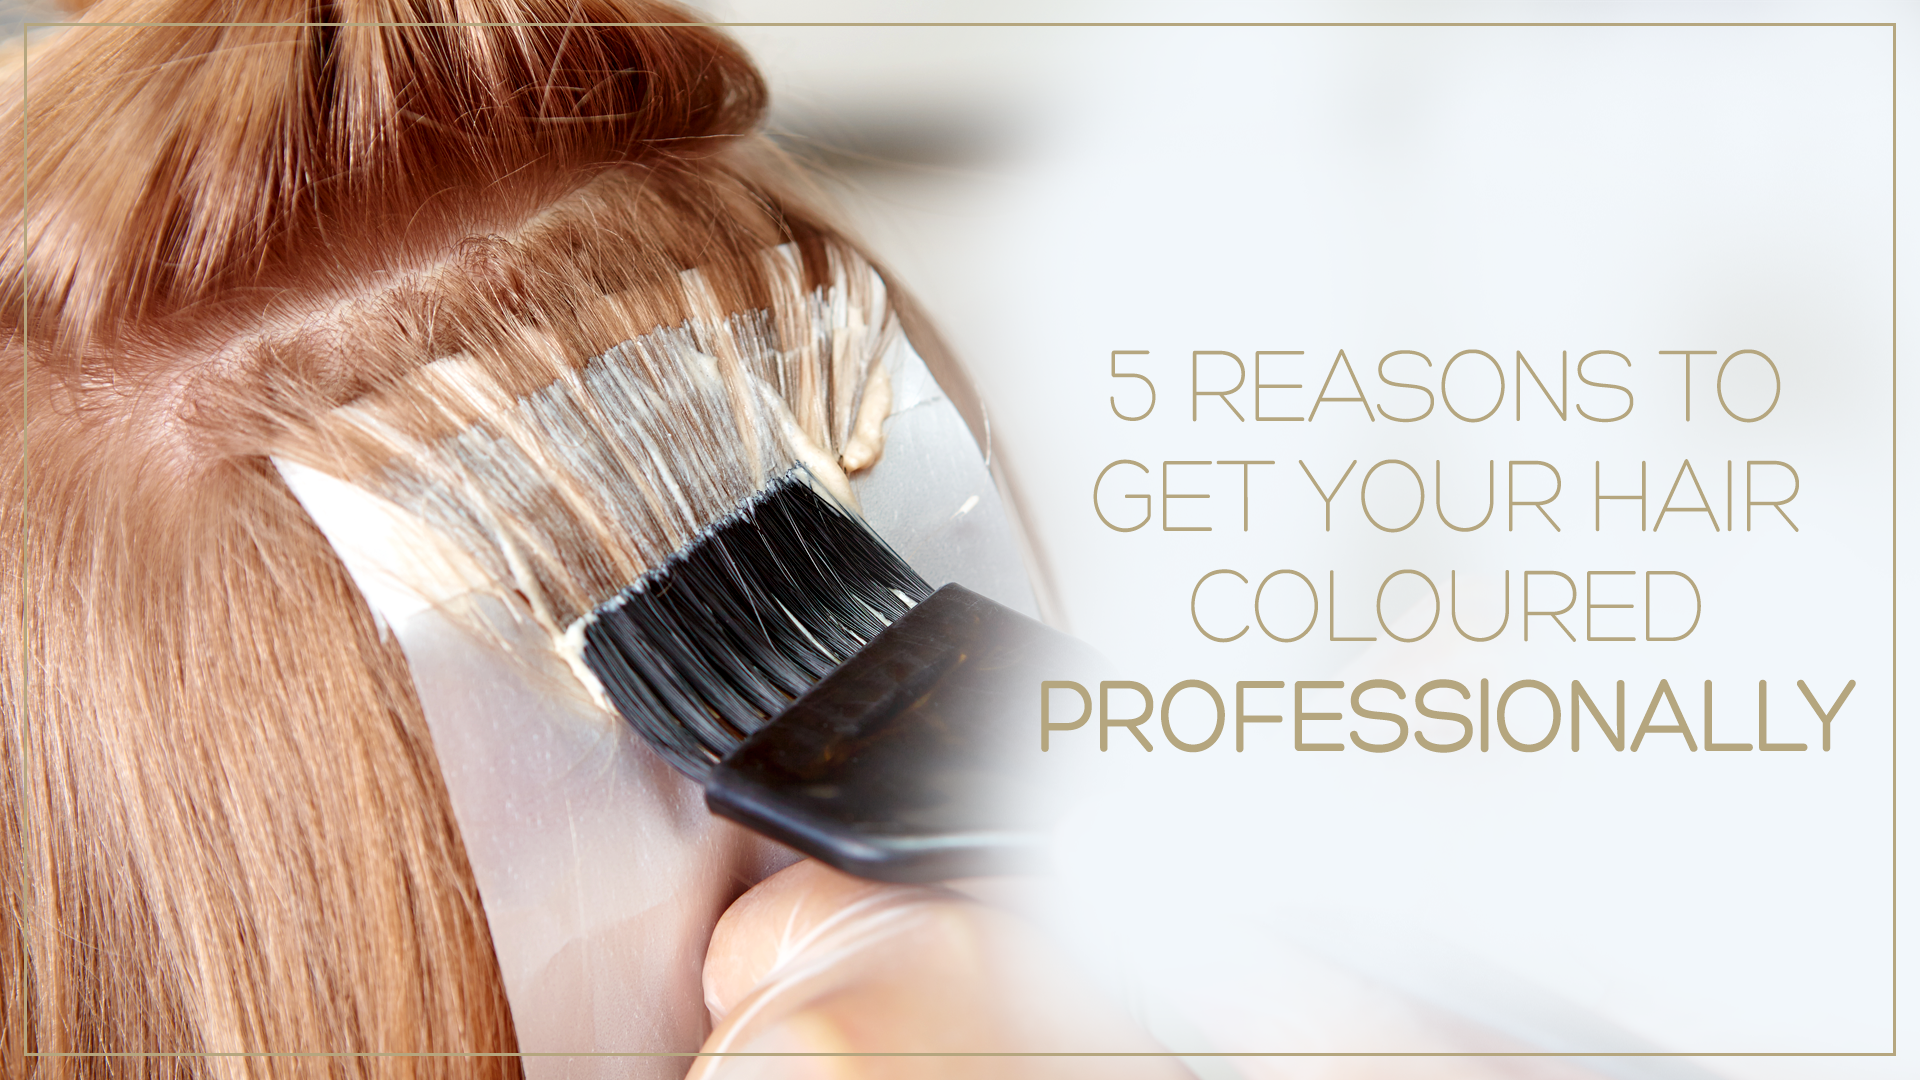 caralyn's hair - 5 reasons to get your hair professionally coloured